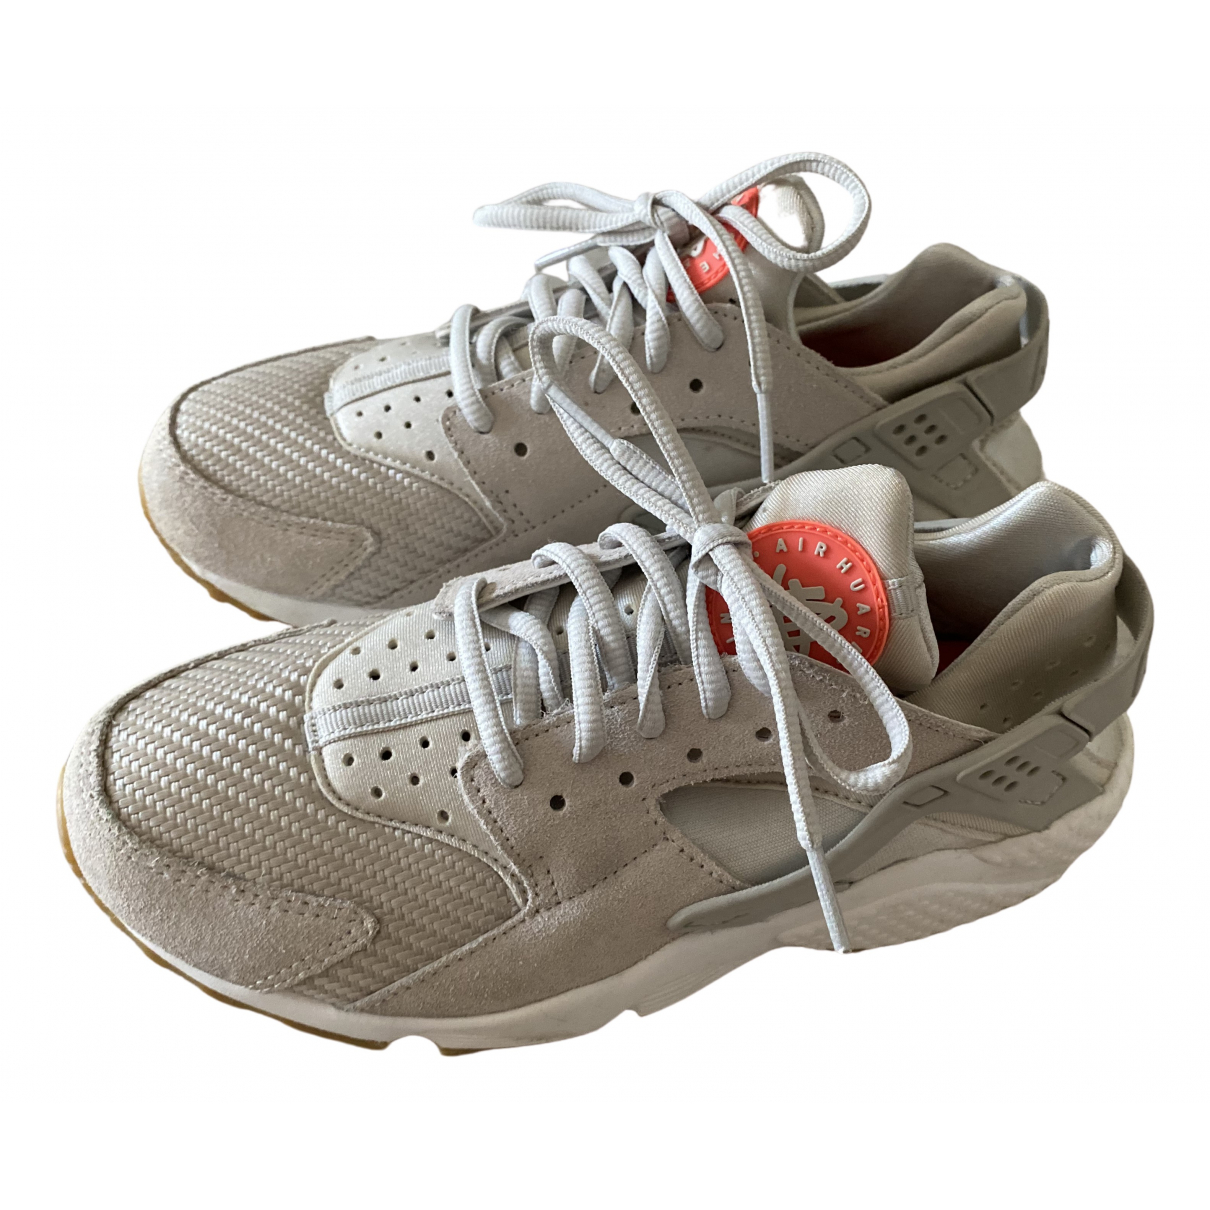 Nike Huarache Beige Cloth Trainers for Women 5 UK